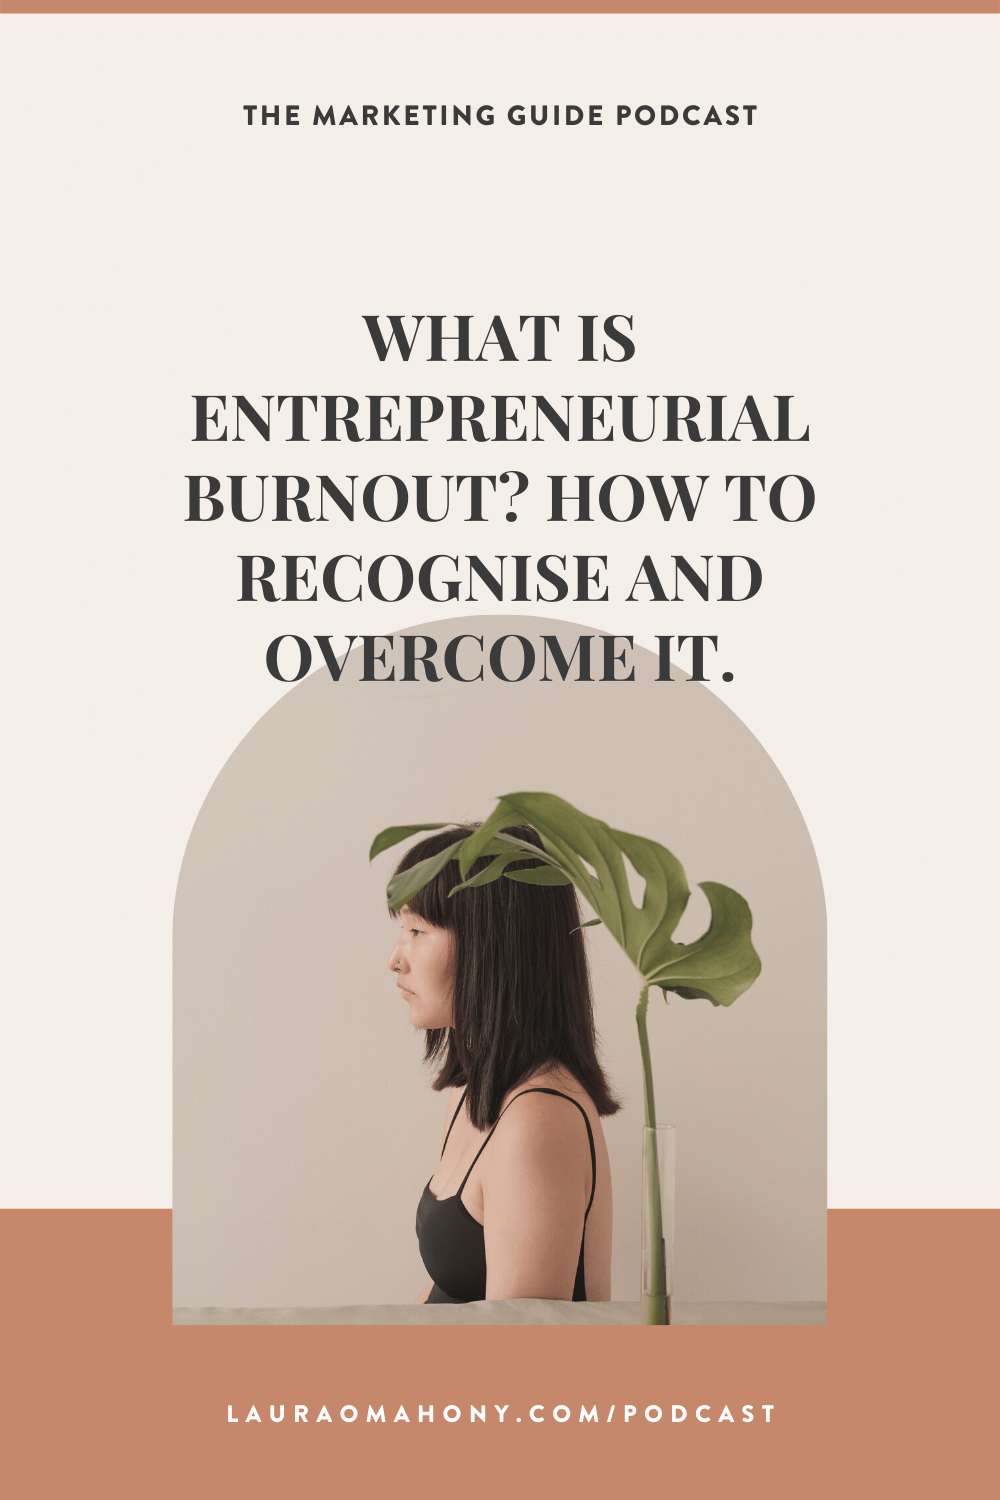 What is Entrepreneurial Burnout? How To Recognise And Overcome It.